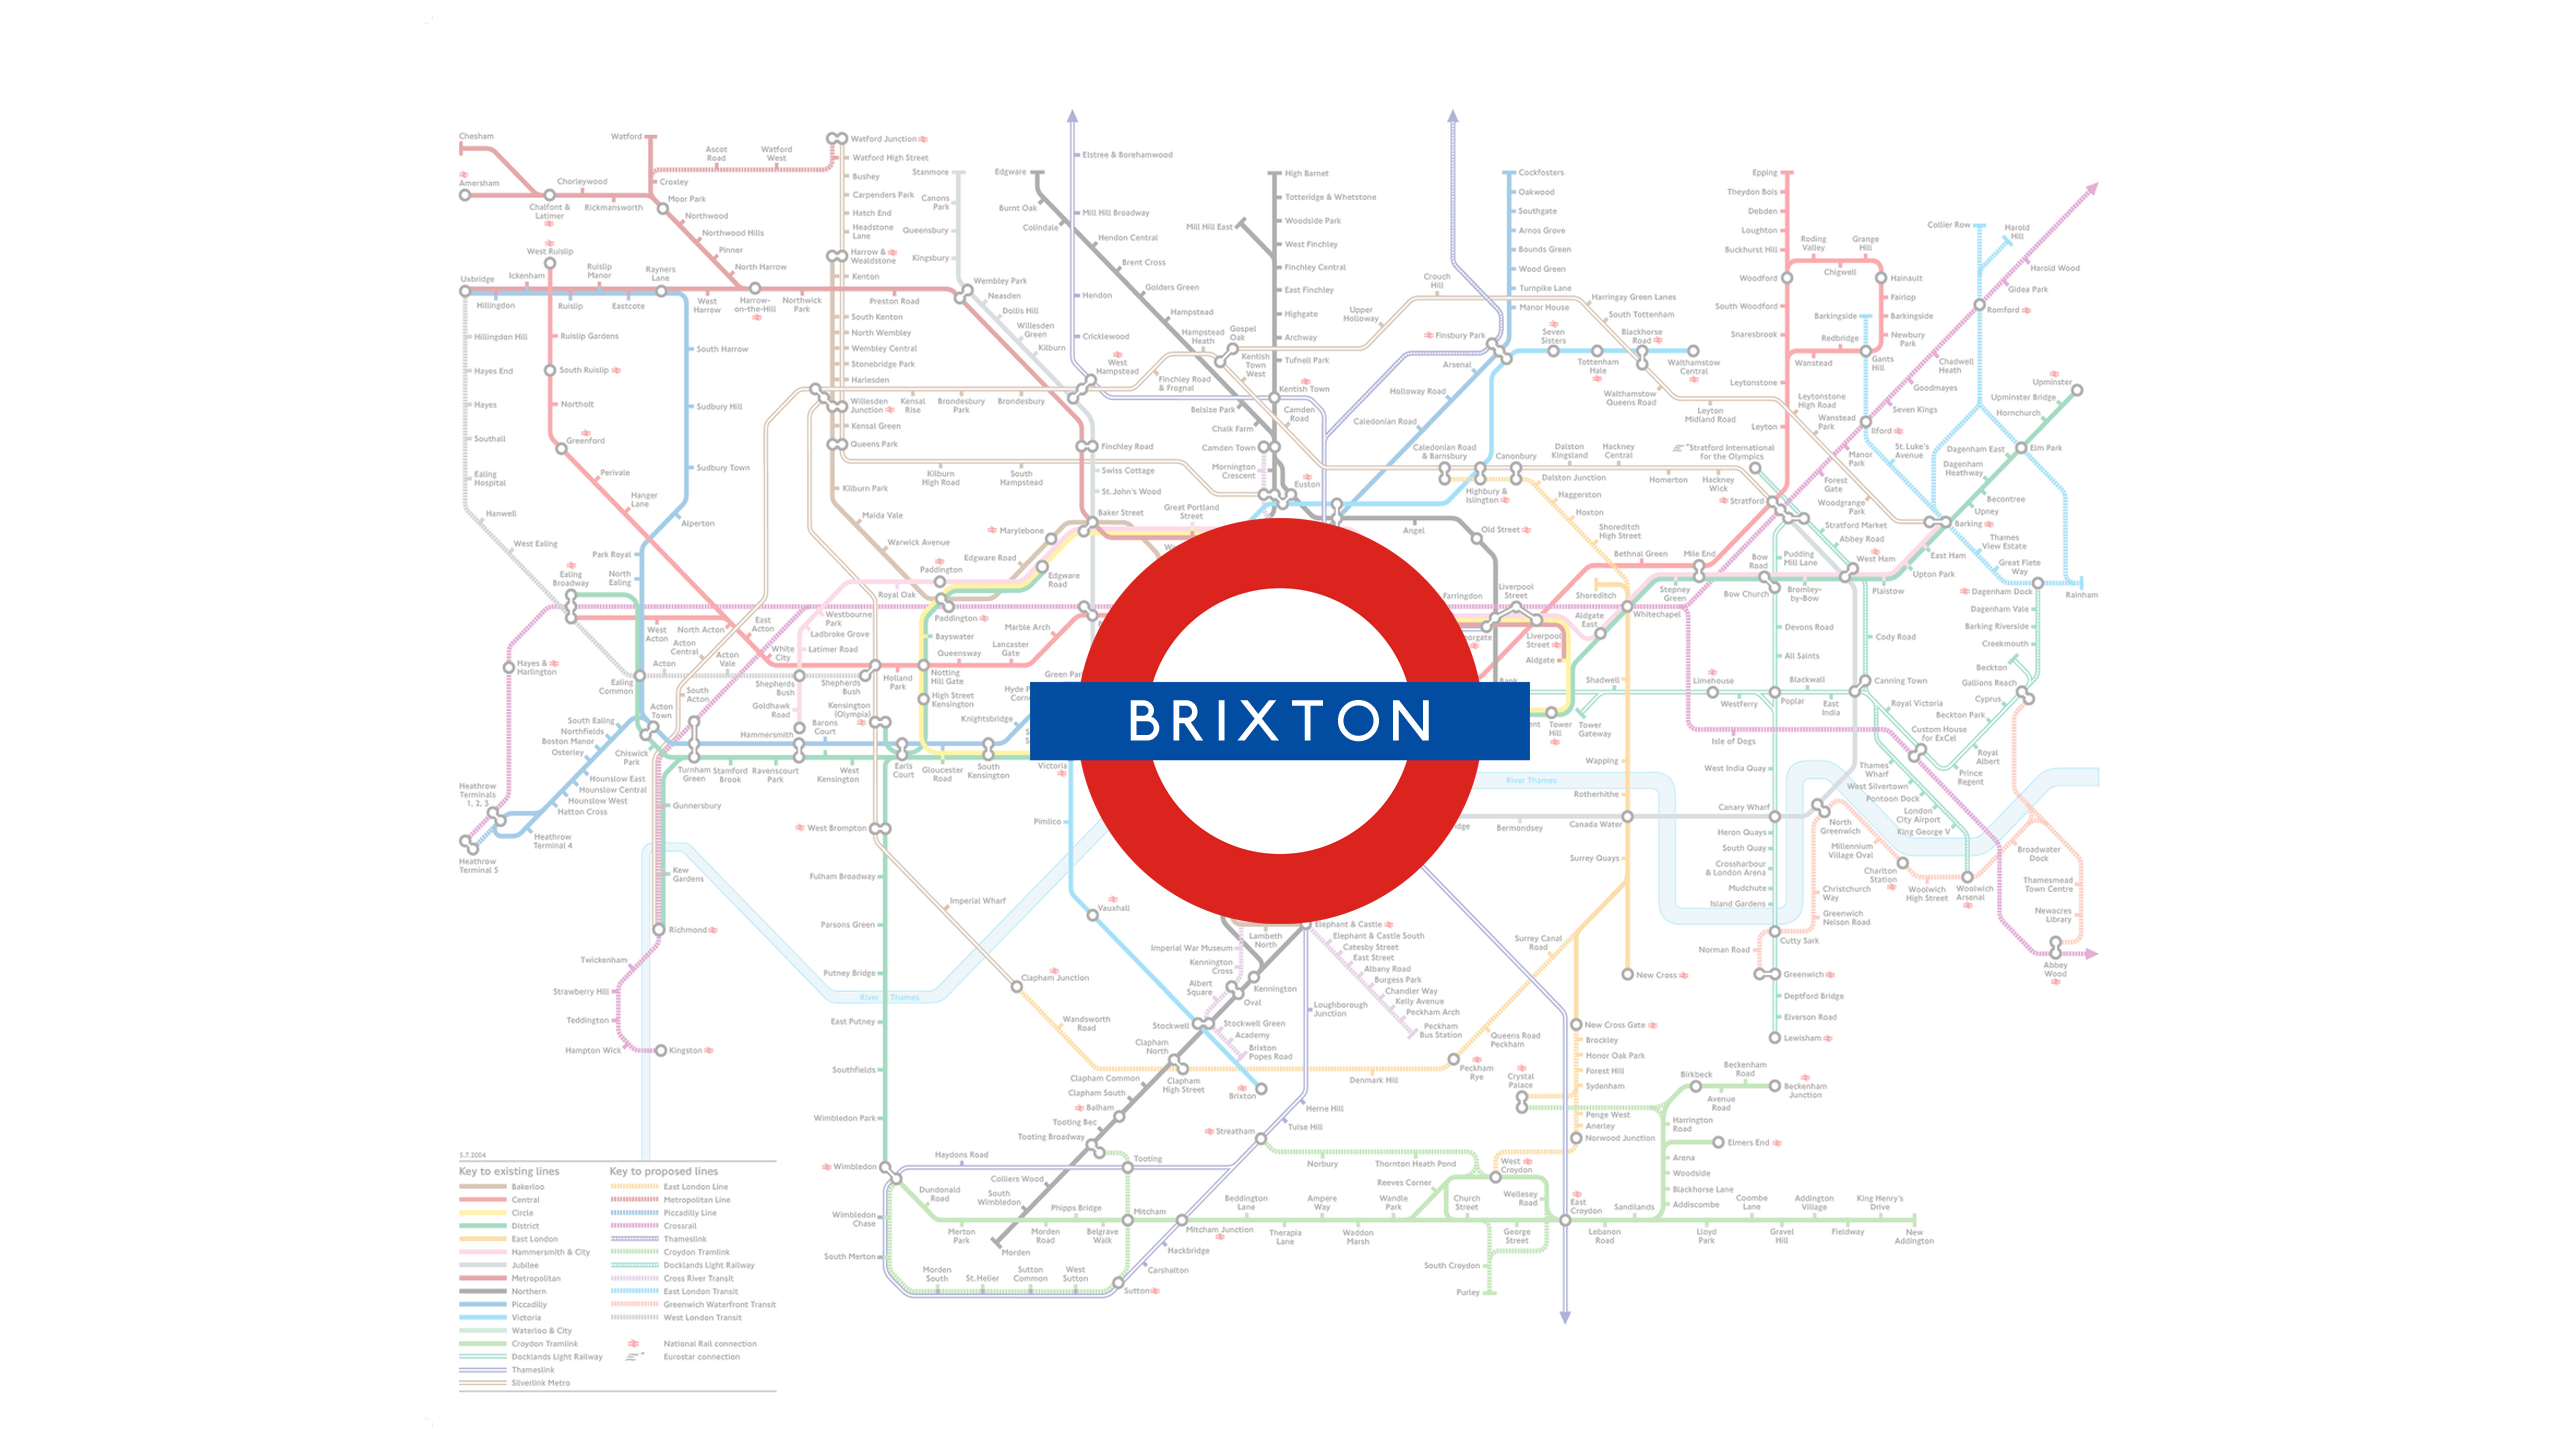 Brixton (Map)